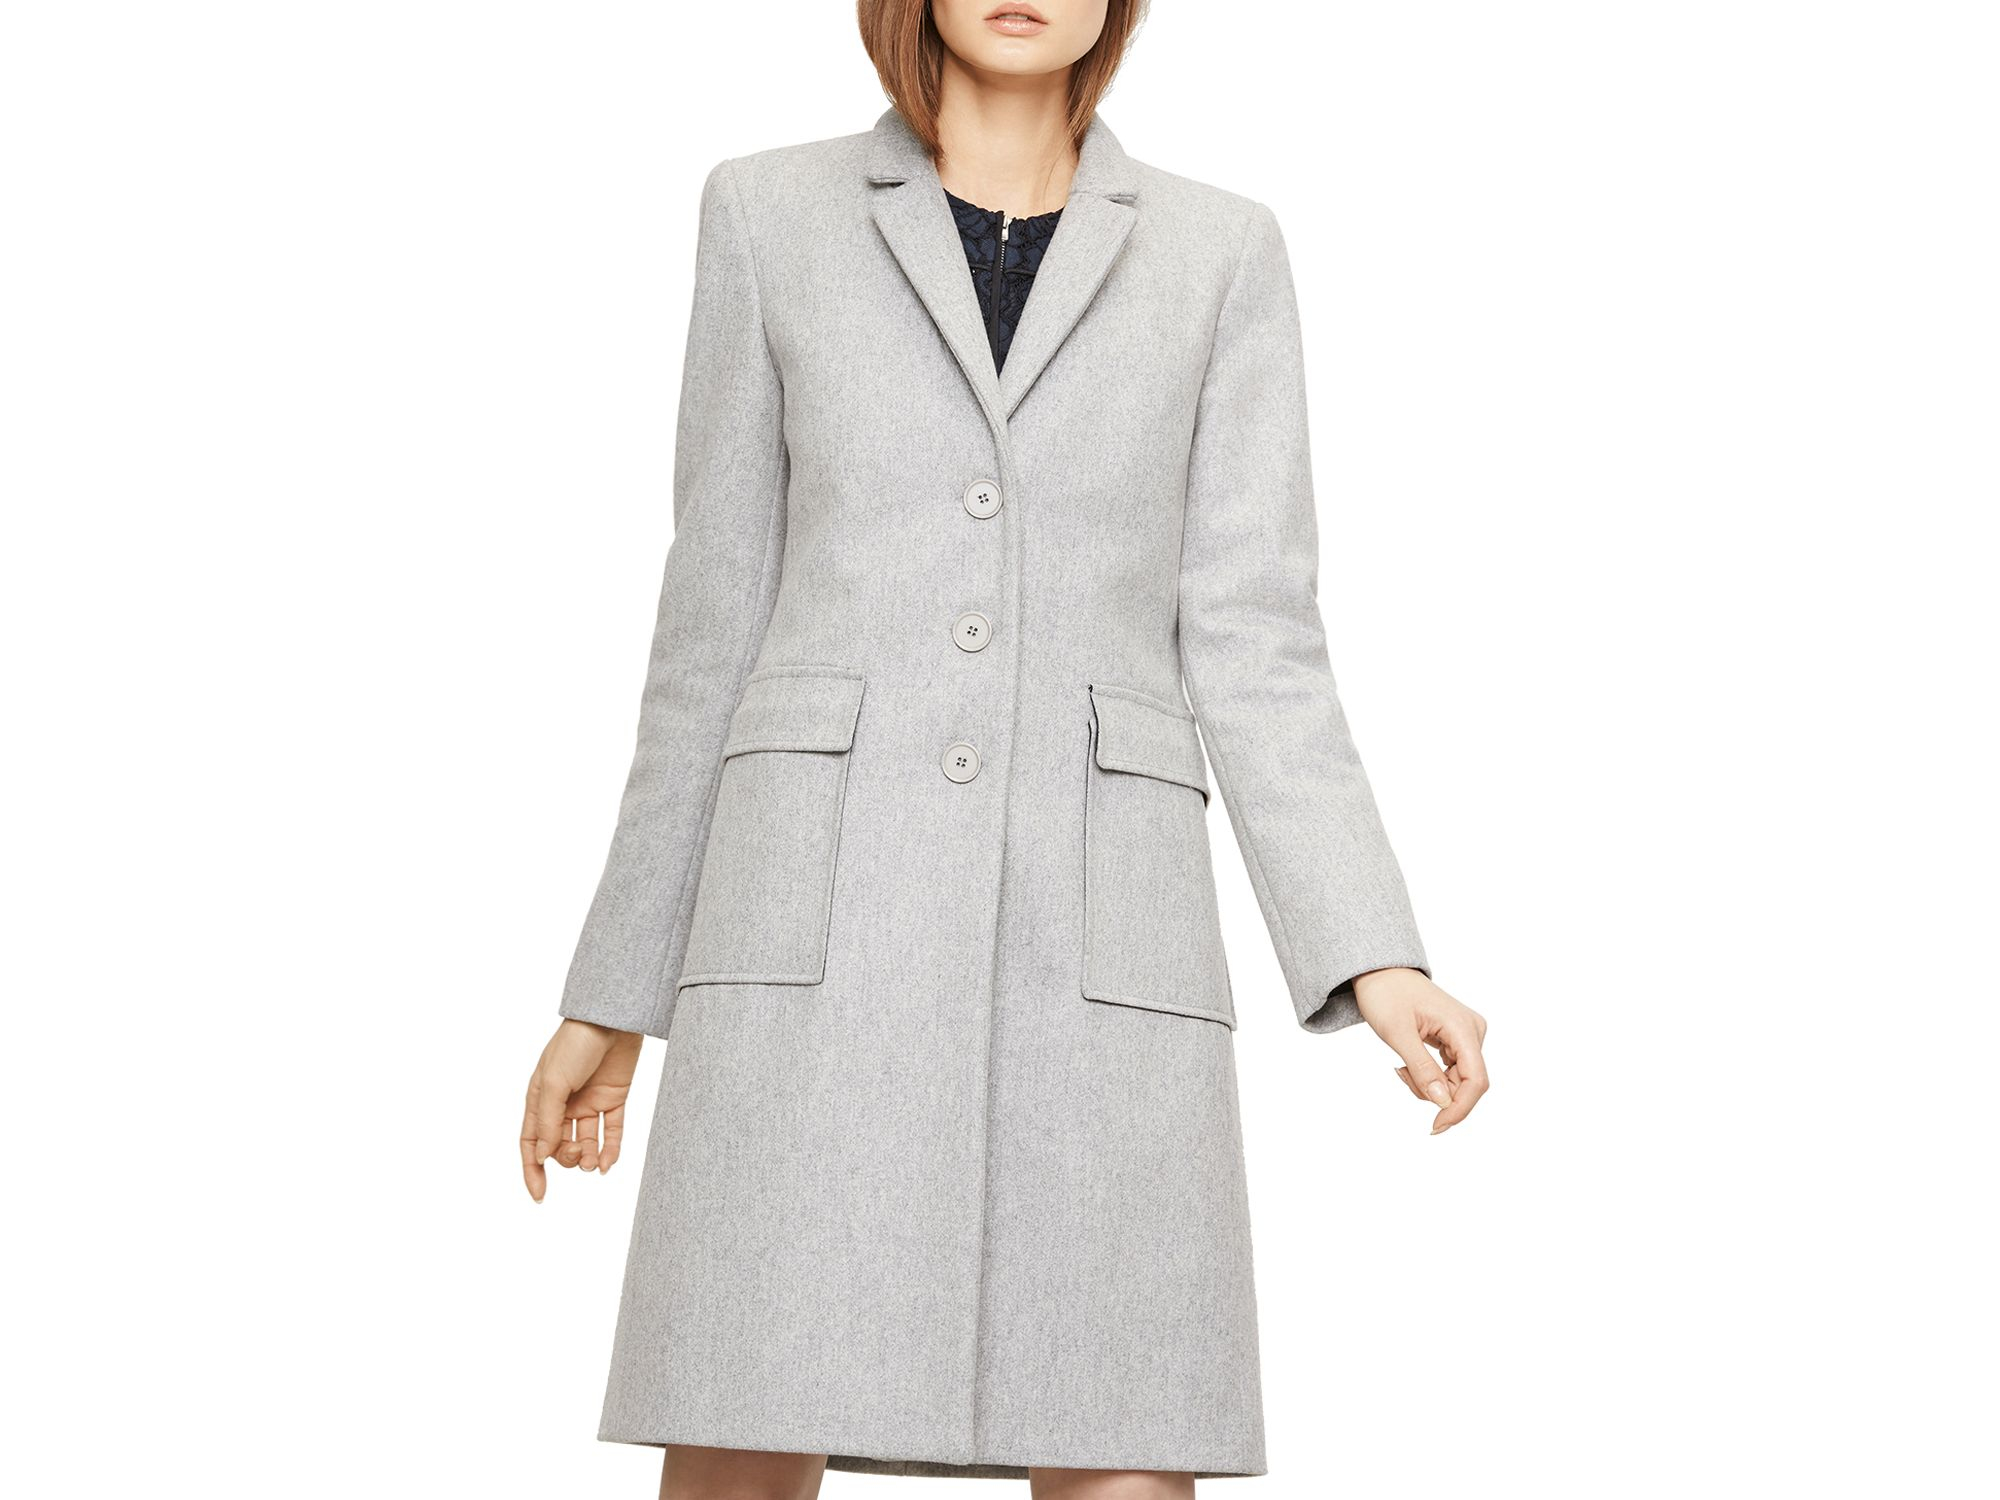 Maje Grakim Wool Coat in Gray | Lyst